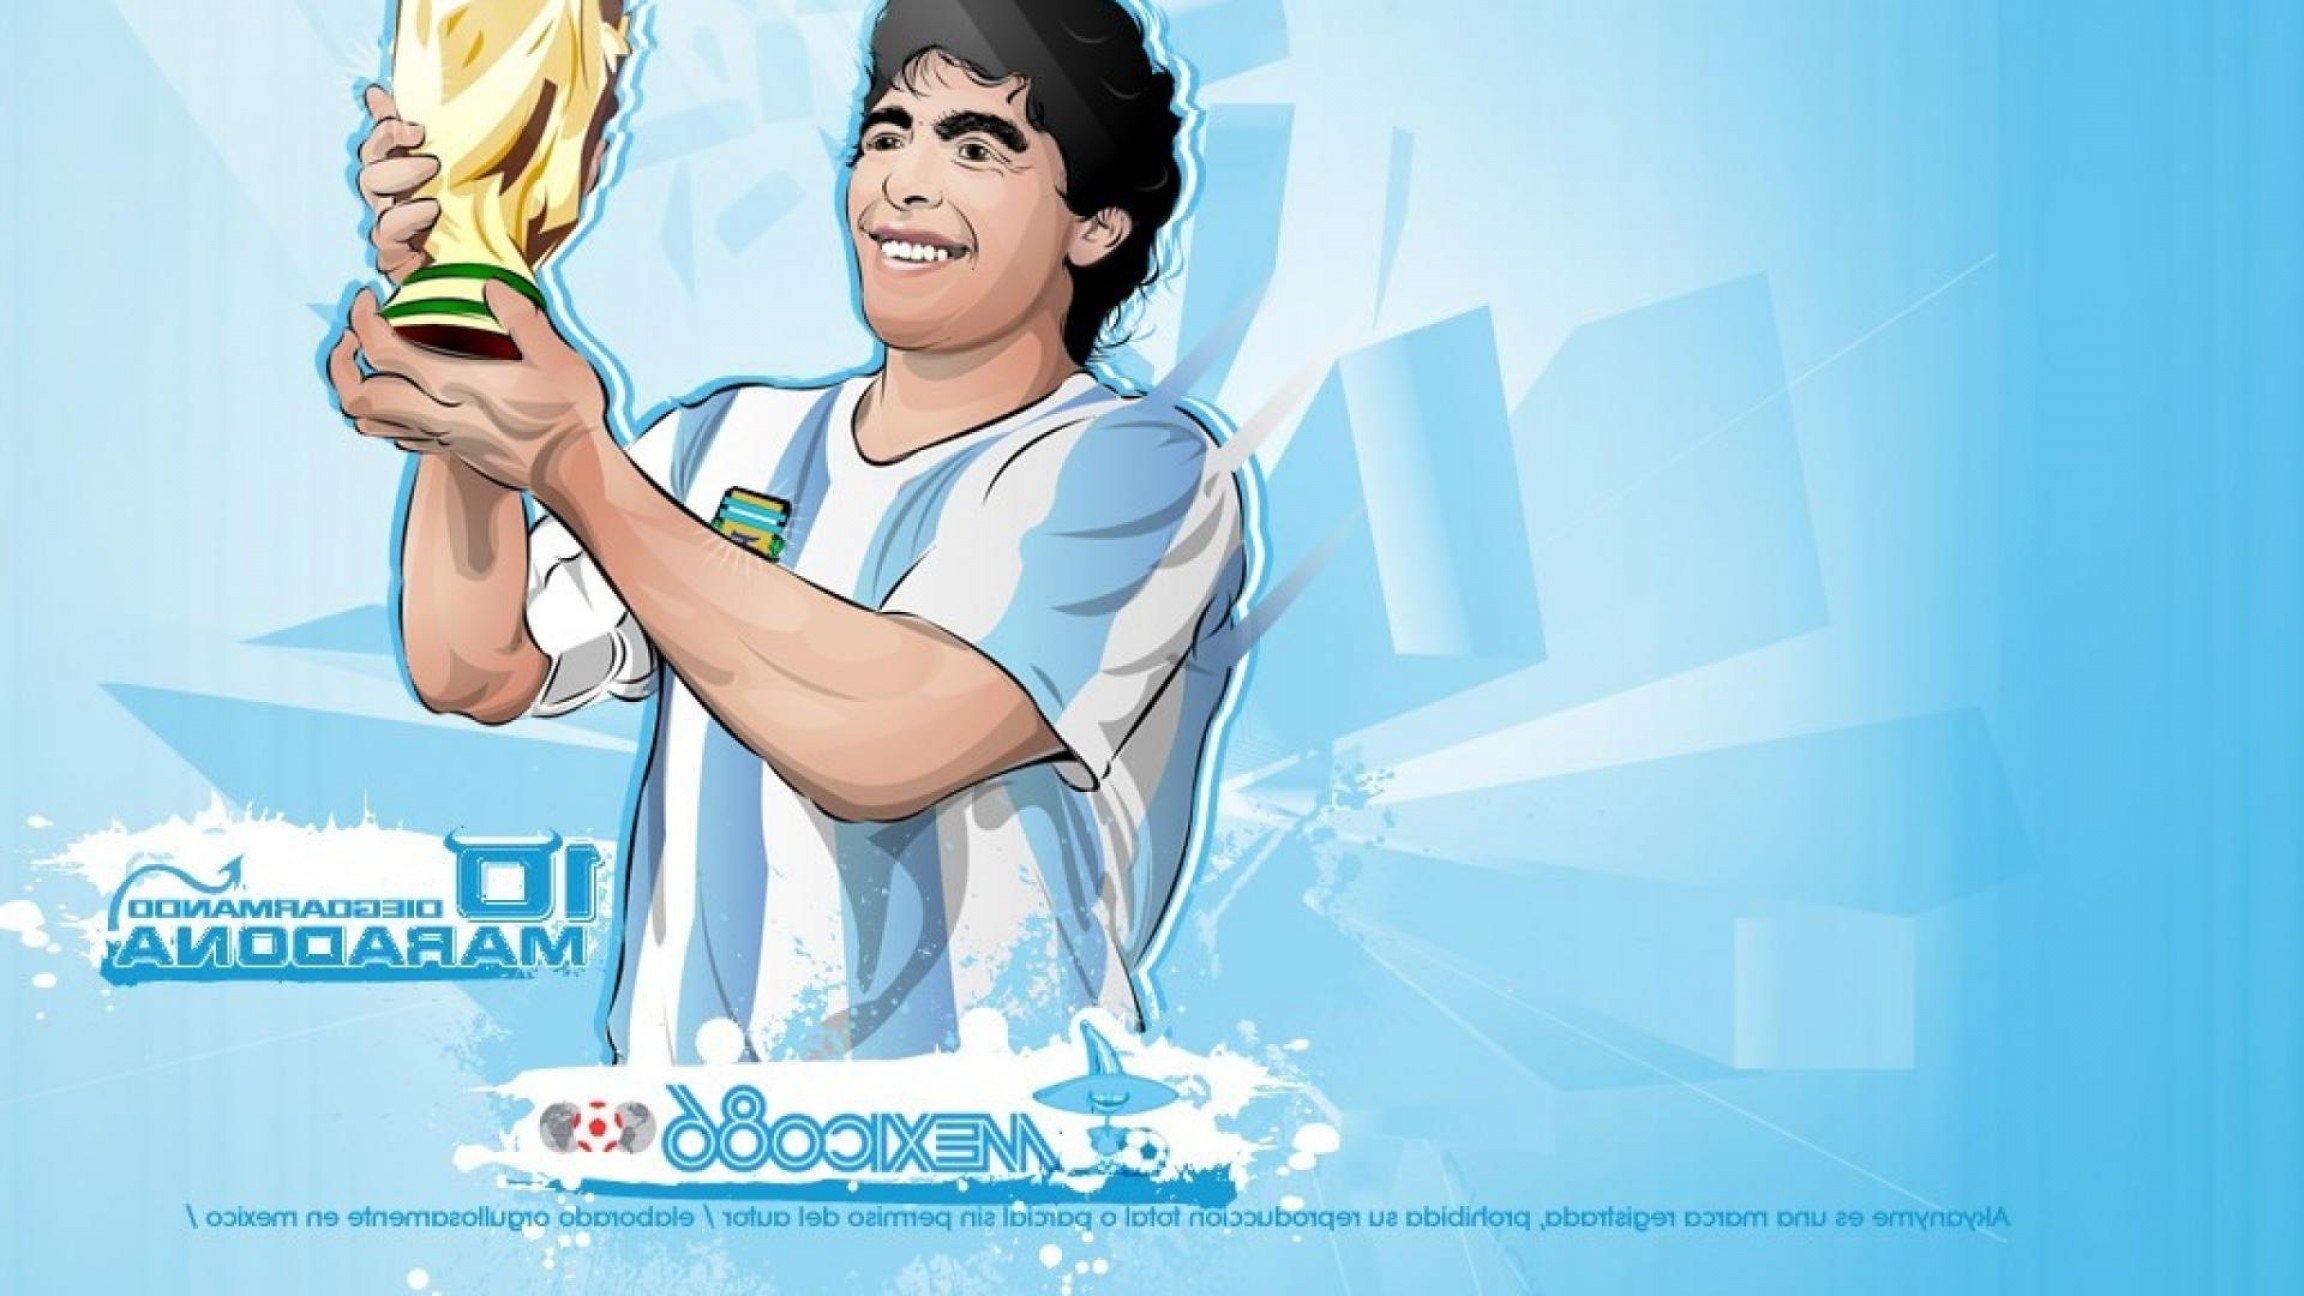 Football Vector Wallpaper: Vector Soccer Diego Maradona Football Player Wallpaper